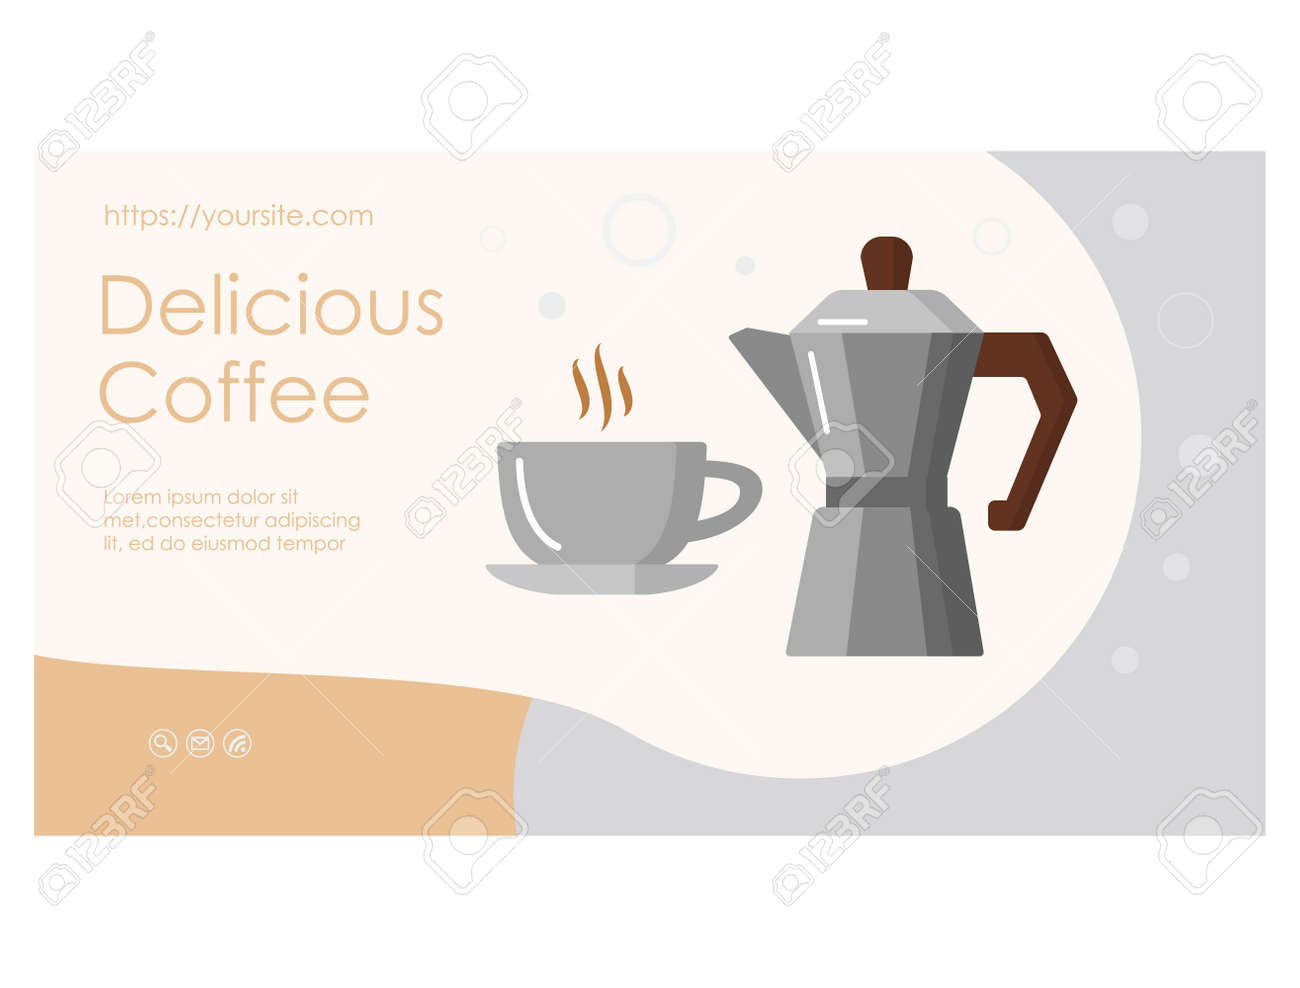 Delicious Coffee web page with geyser coffee maker - 170260491